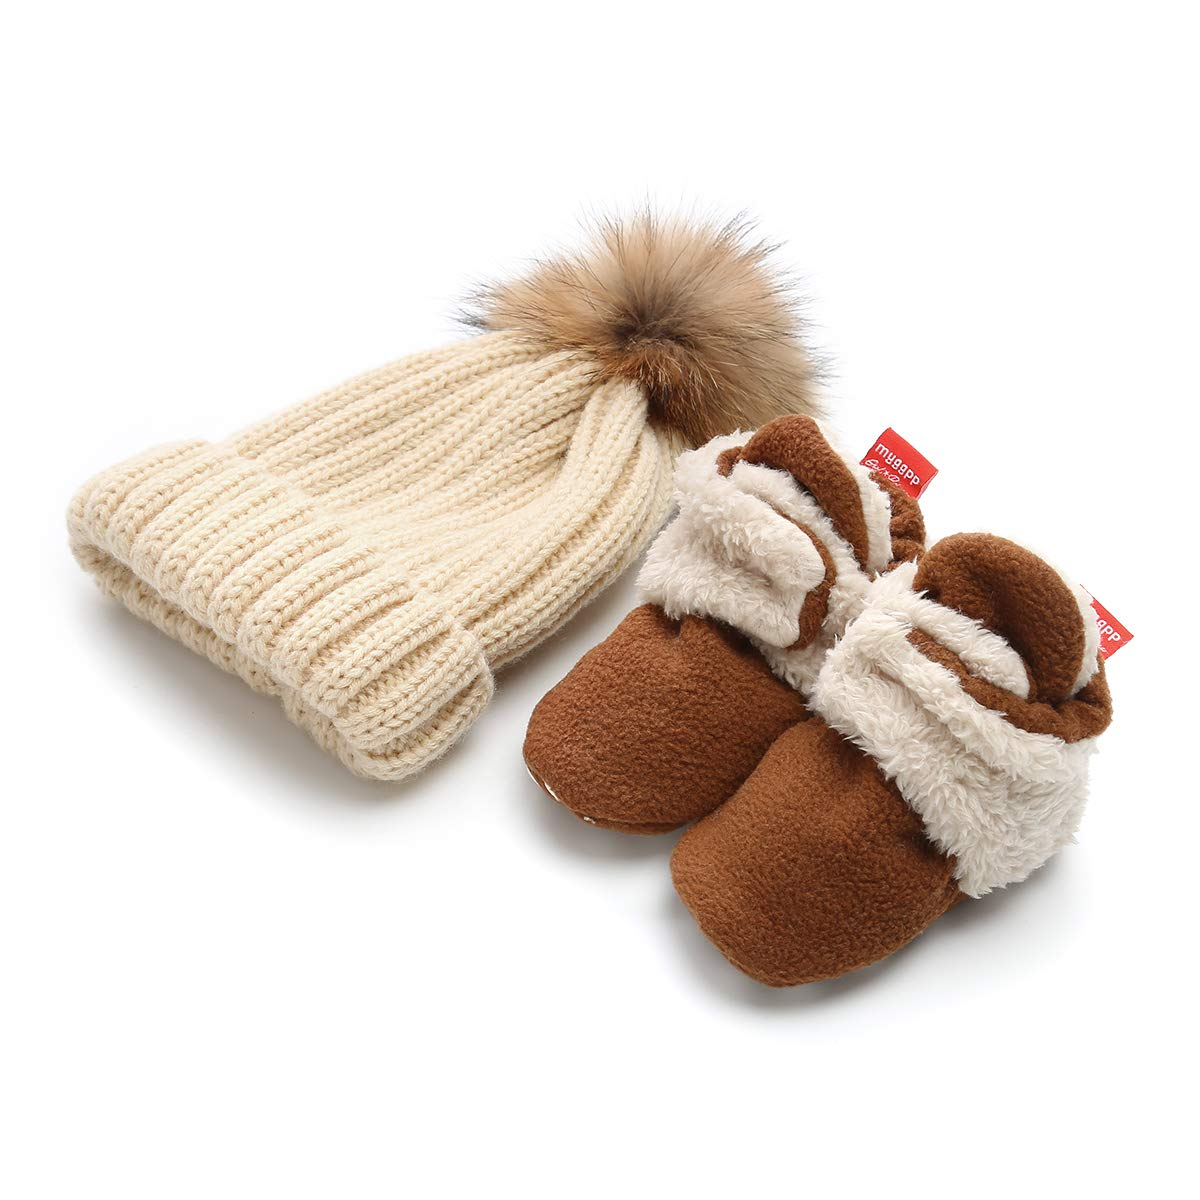 Isbasic Unisex Baby Cozy Fleece Lined Booties Non-Slip Infant Winter Warm Socks Shoes + Knit Pom Pom Hat (6-12 Months Brown)